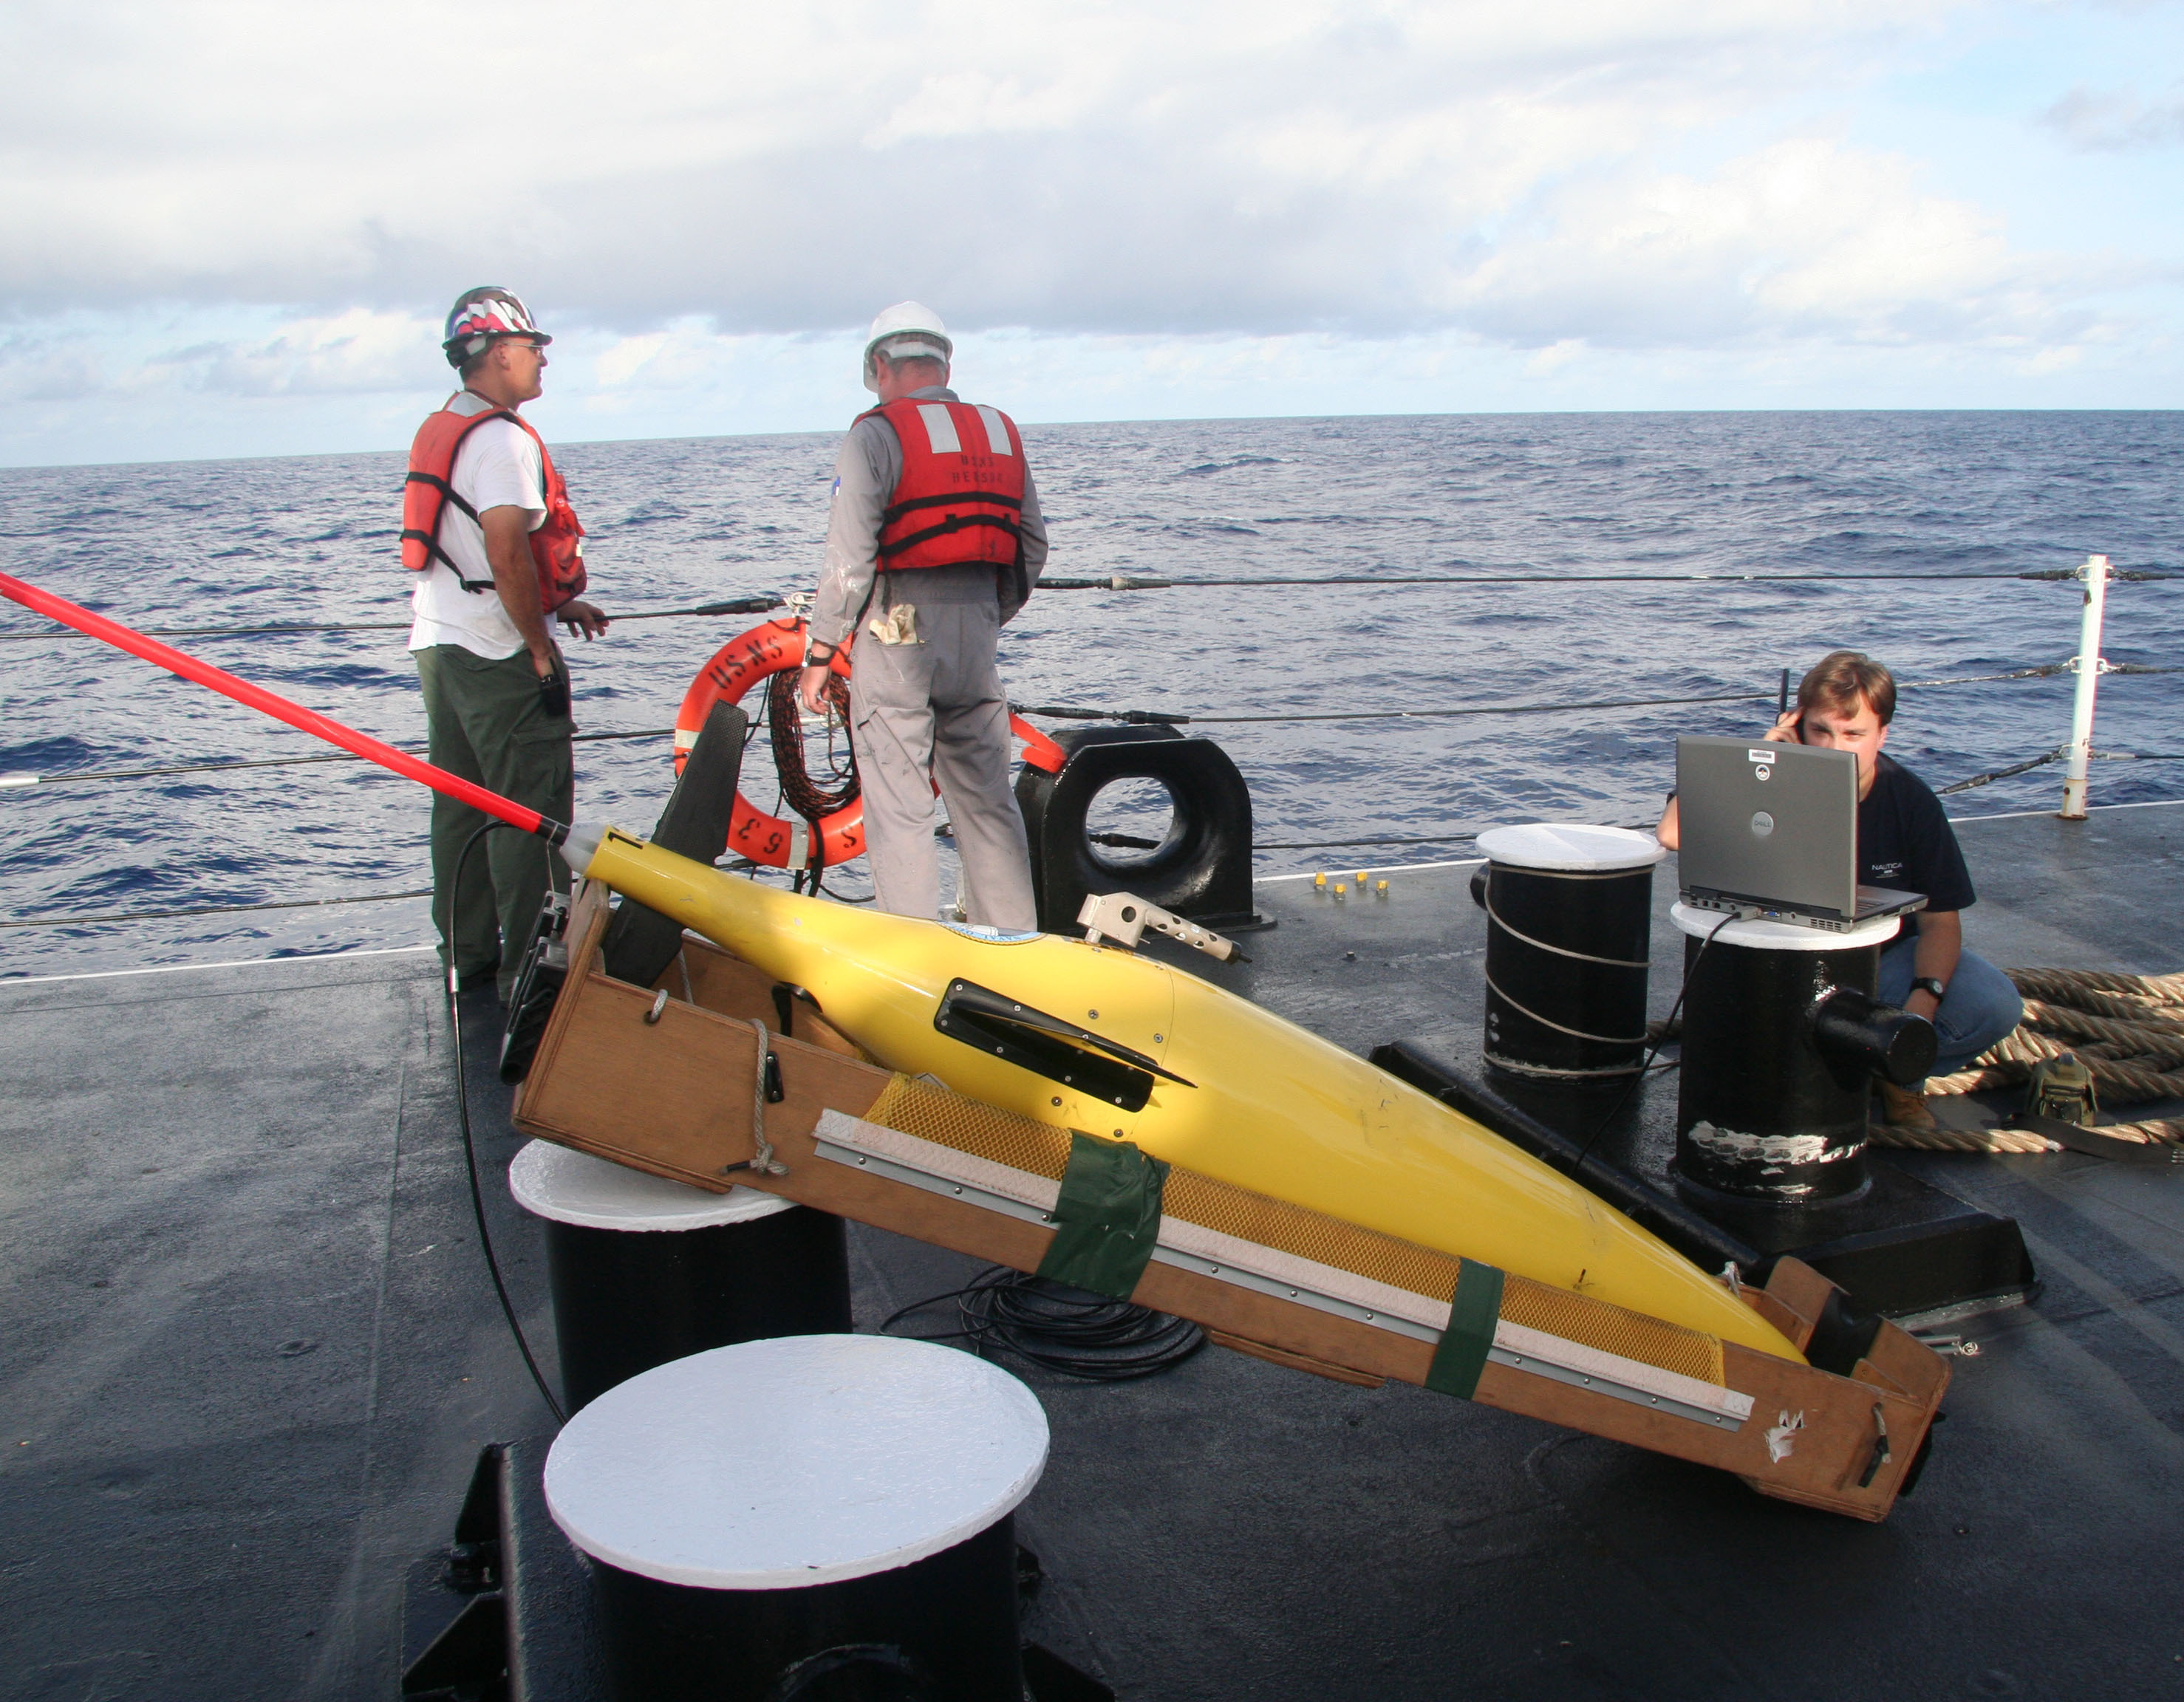 An oceanographer from the Naval Oceanographic Office, right, establishes a satellite connection before launching a seaglider unmanned underwater vessel from the Military Sealift Command oceanographic survey ship USNS Henson on March 24, 2010. (Credit: U.S. Navy / Petty Officer 2nd Class Lily Daniels)